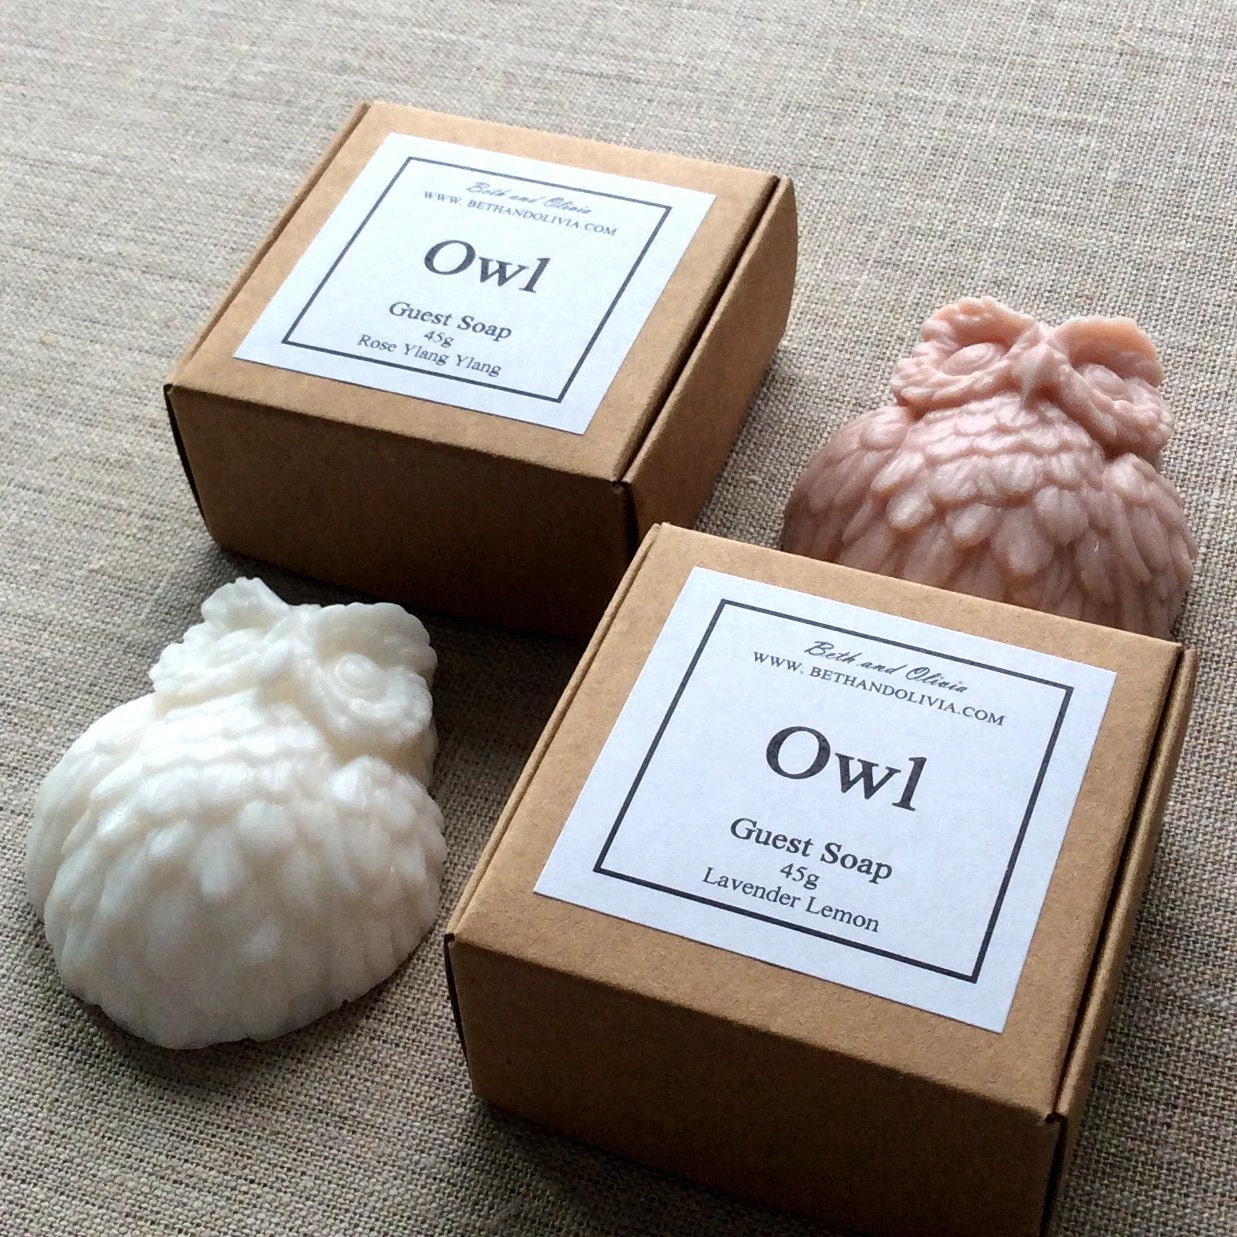 Owl Soap, Rose and ylang ylang soap, lavender lemon owl soap, guest soap, wholesale soap, bachelorette party favors, bridal shower favors